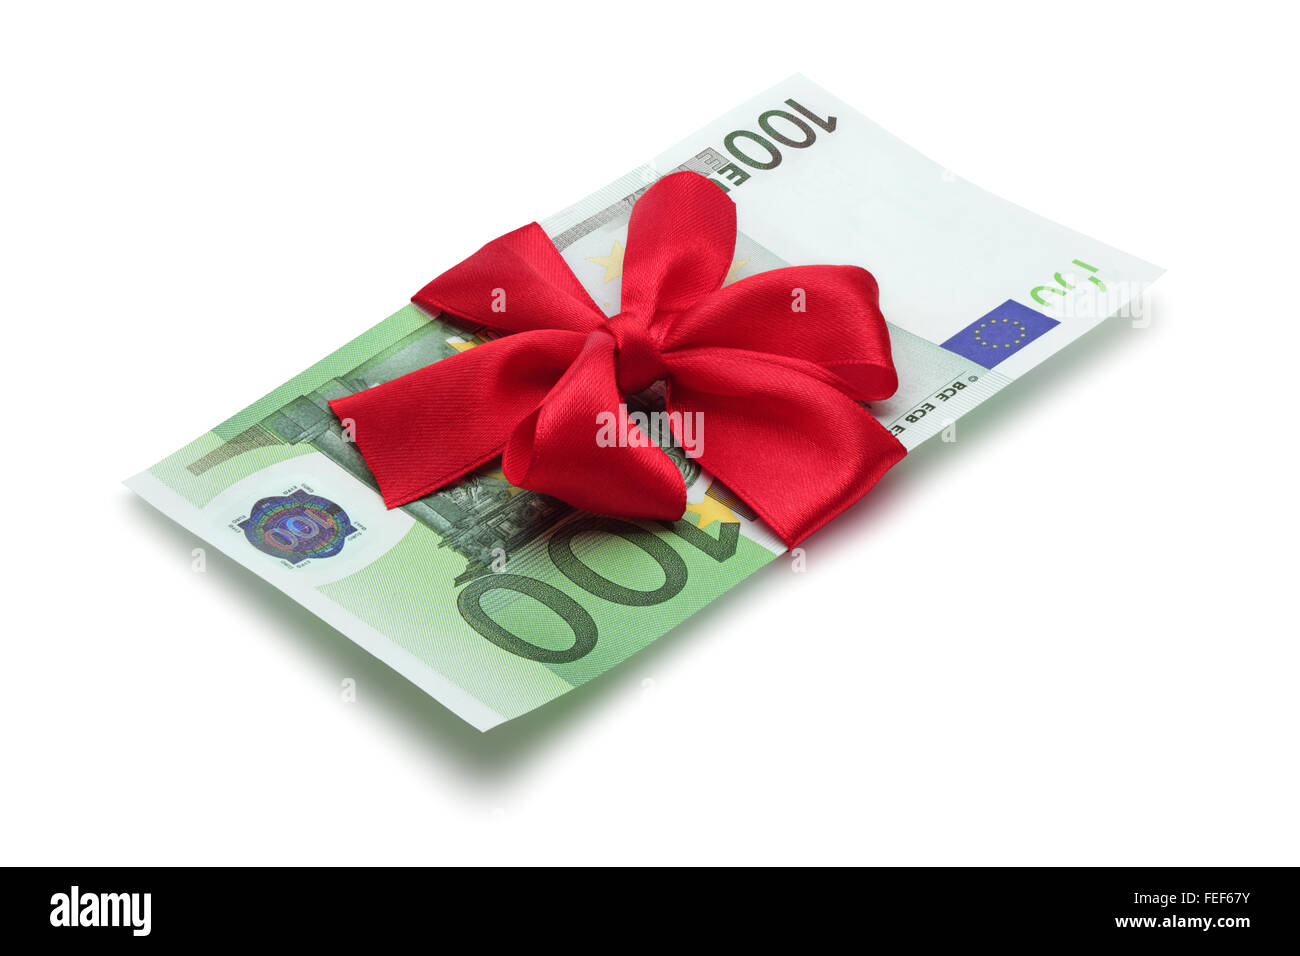 One hundred euro banknote with red bow, isolated on the white background, clipping path included. - Stock Image